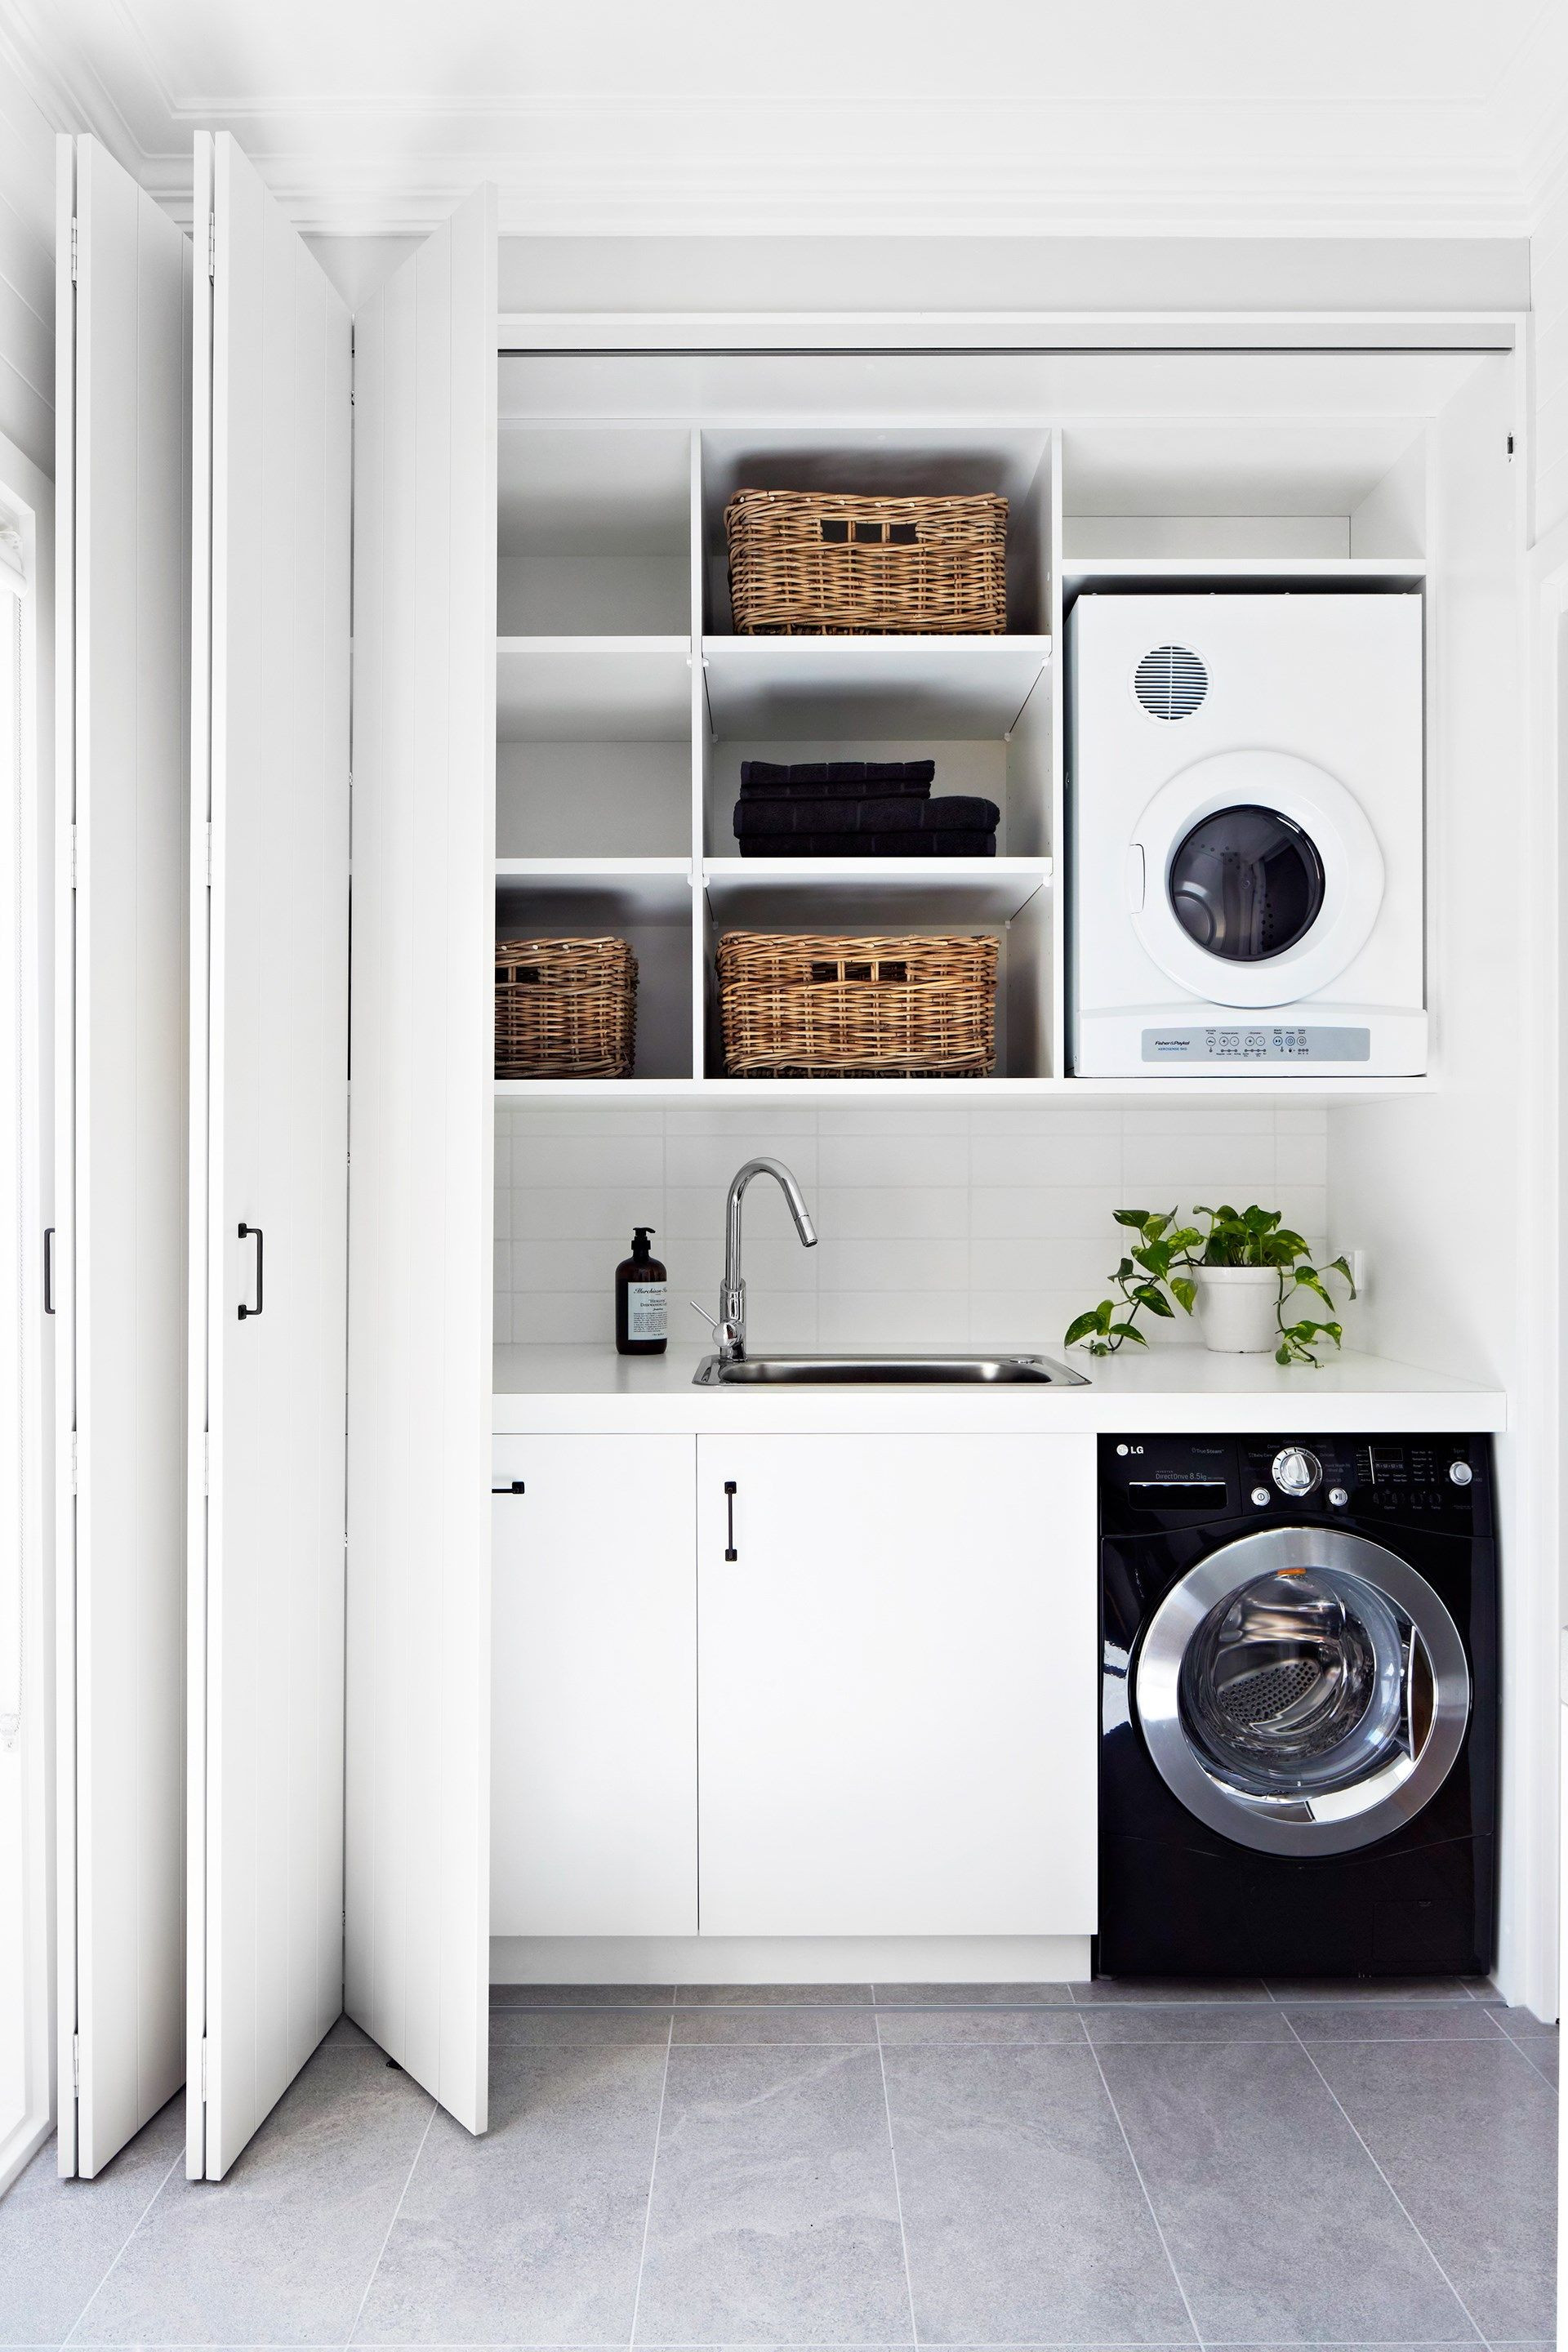 Best ideas about Laundry In Kitchen . Save or Pin Smart Design Ideas to Steal for Small Laundry Rooms Now.